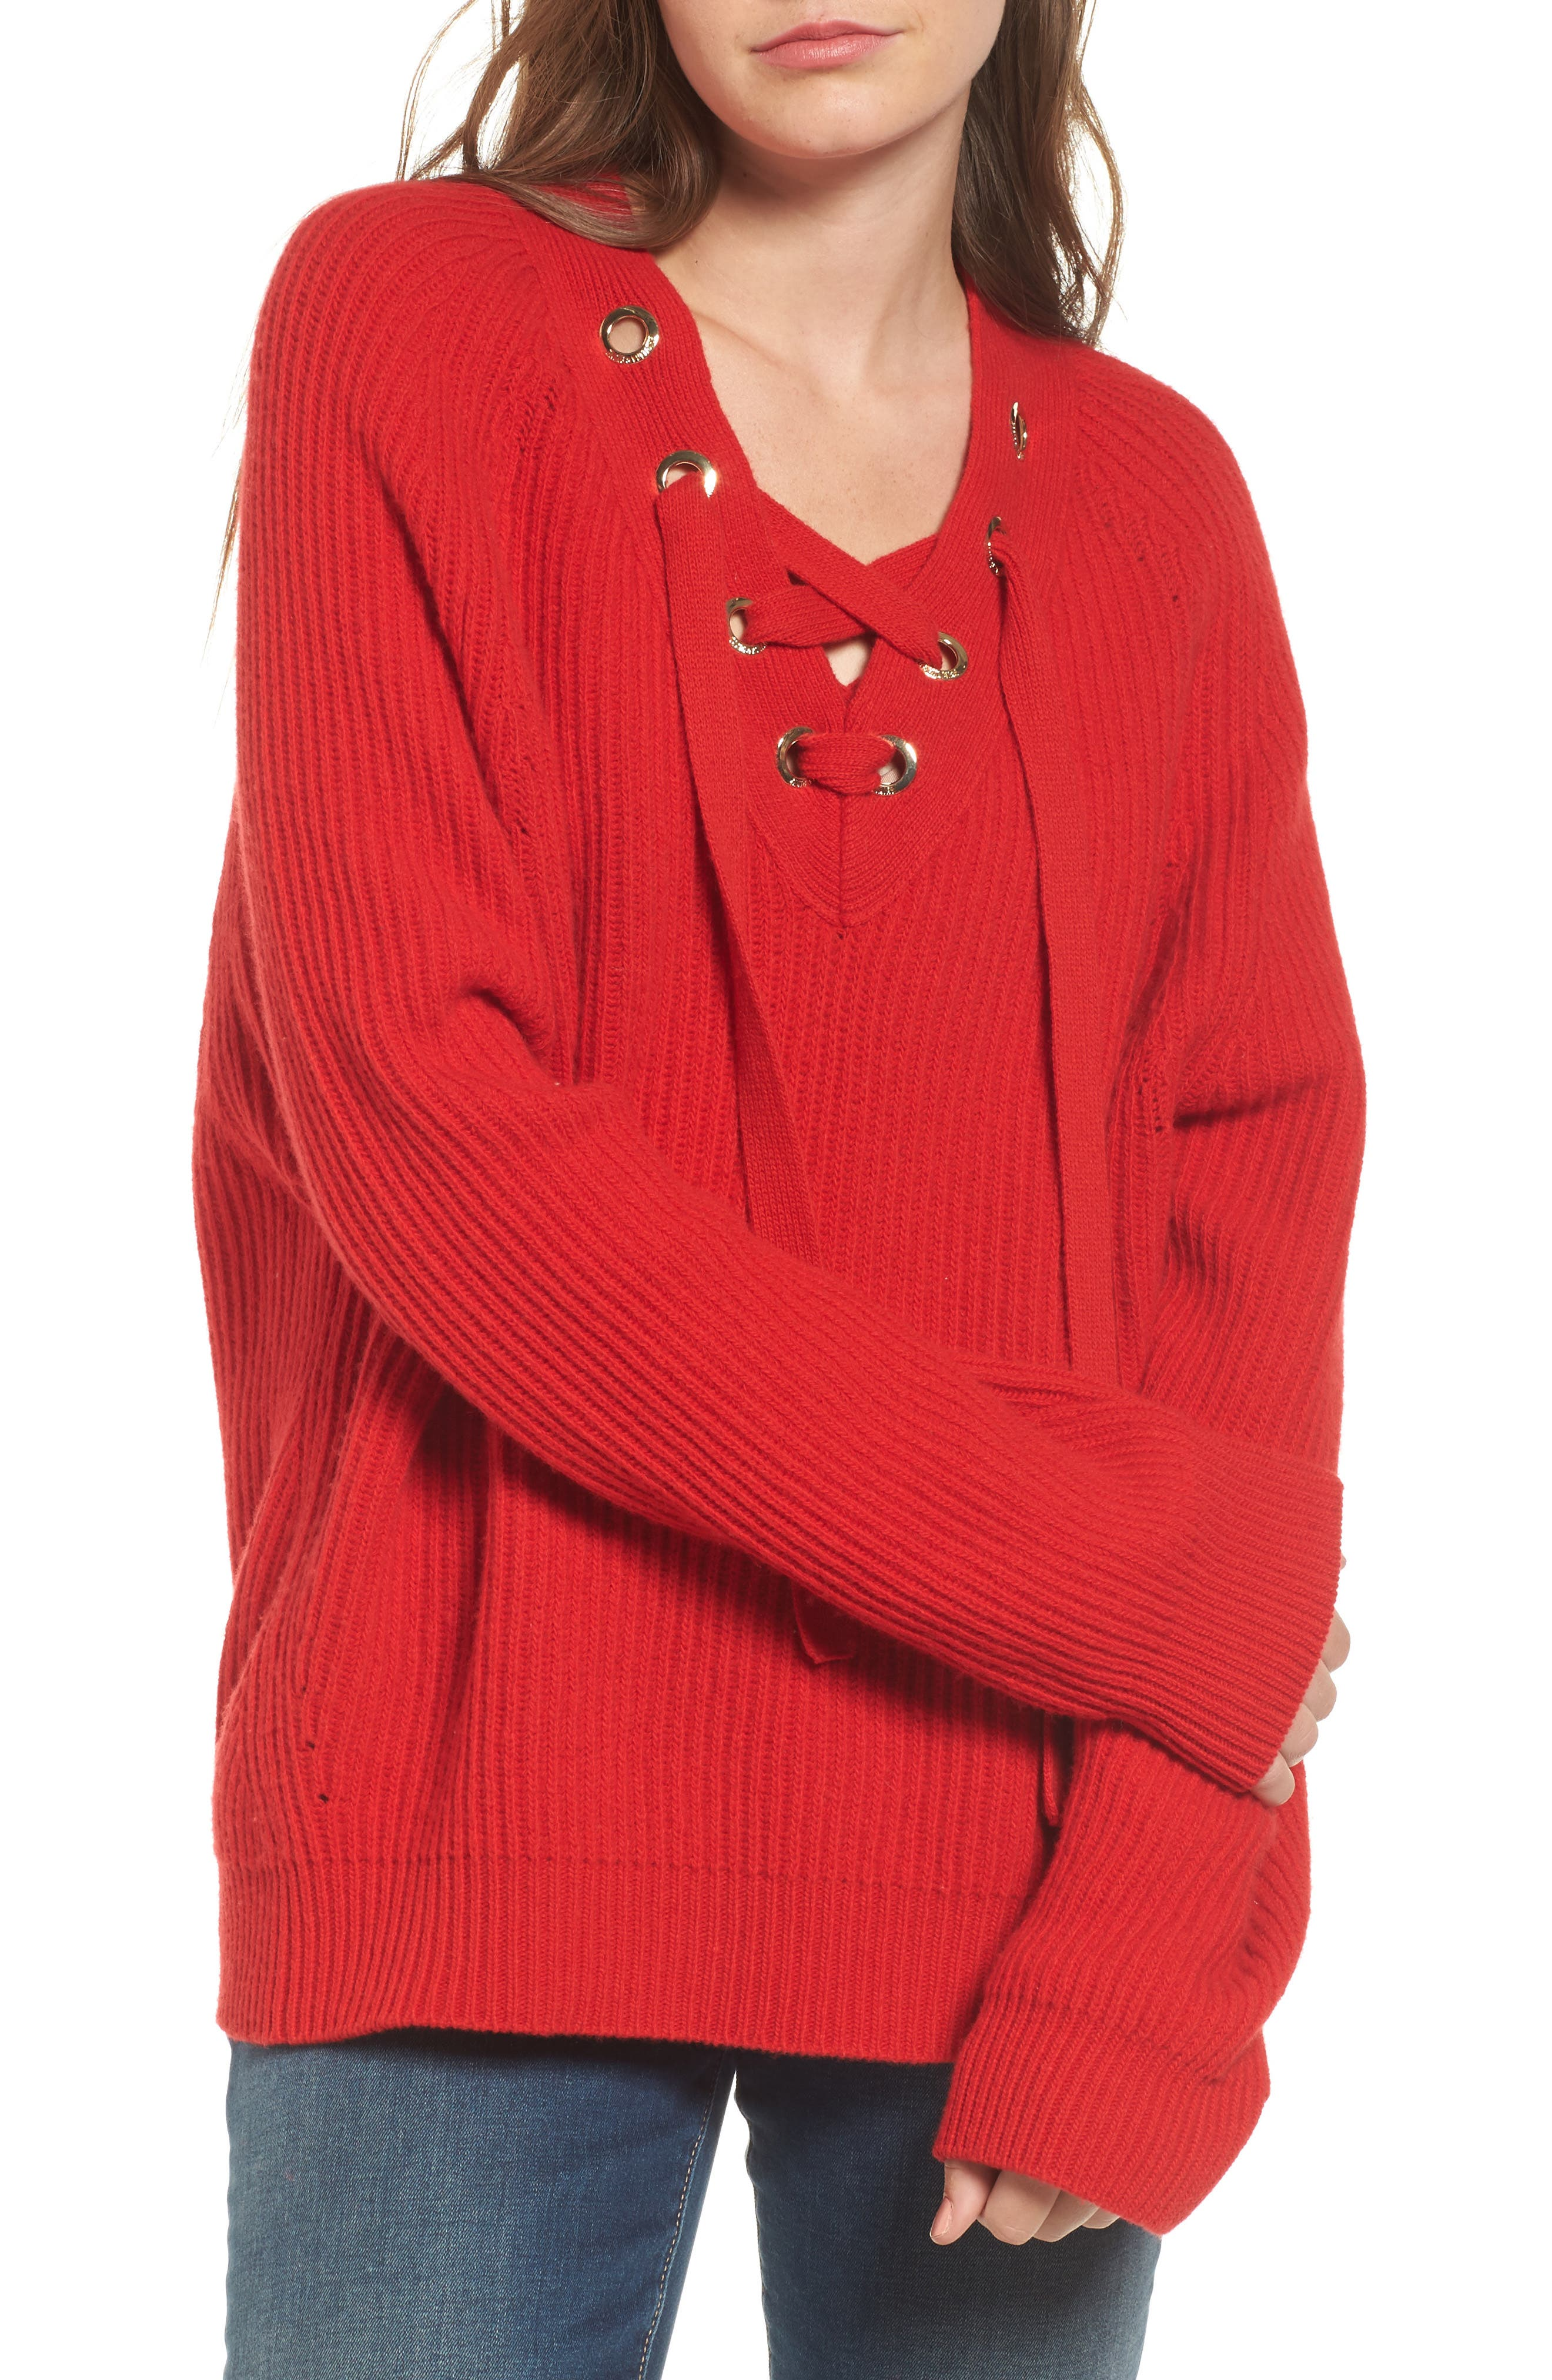 Kassy Wool Blend Sweater,                             Main thumbnail 1, color,                             Rouge